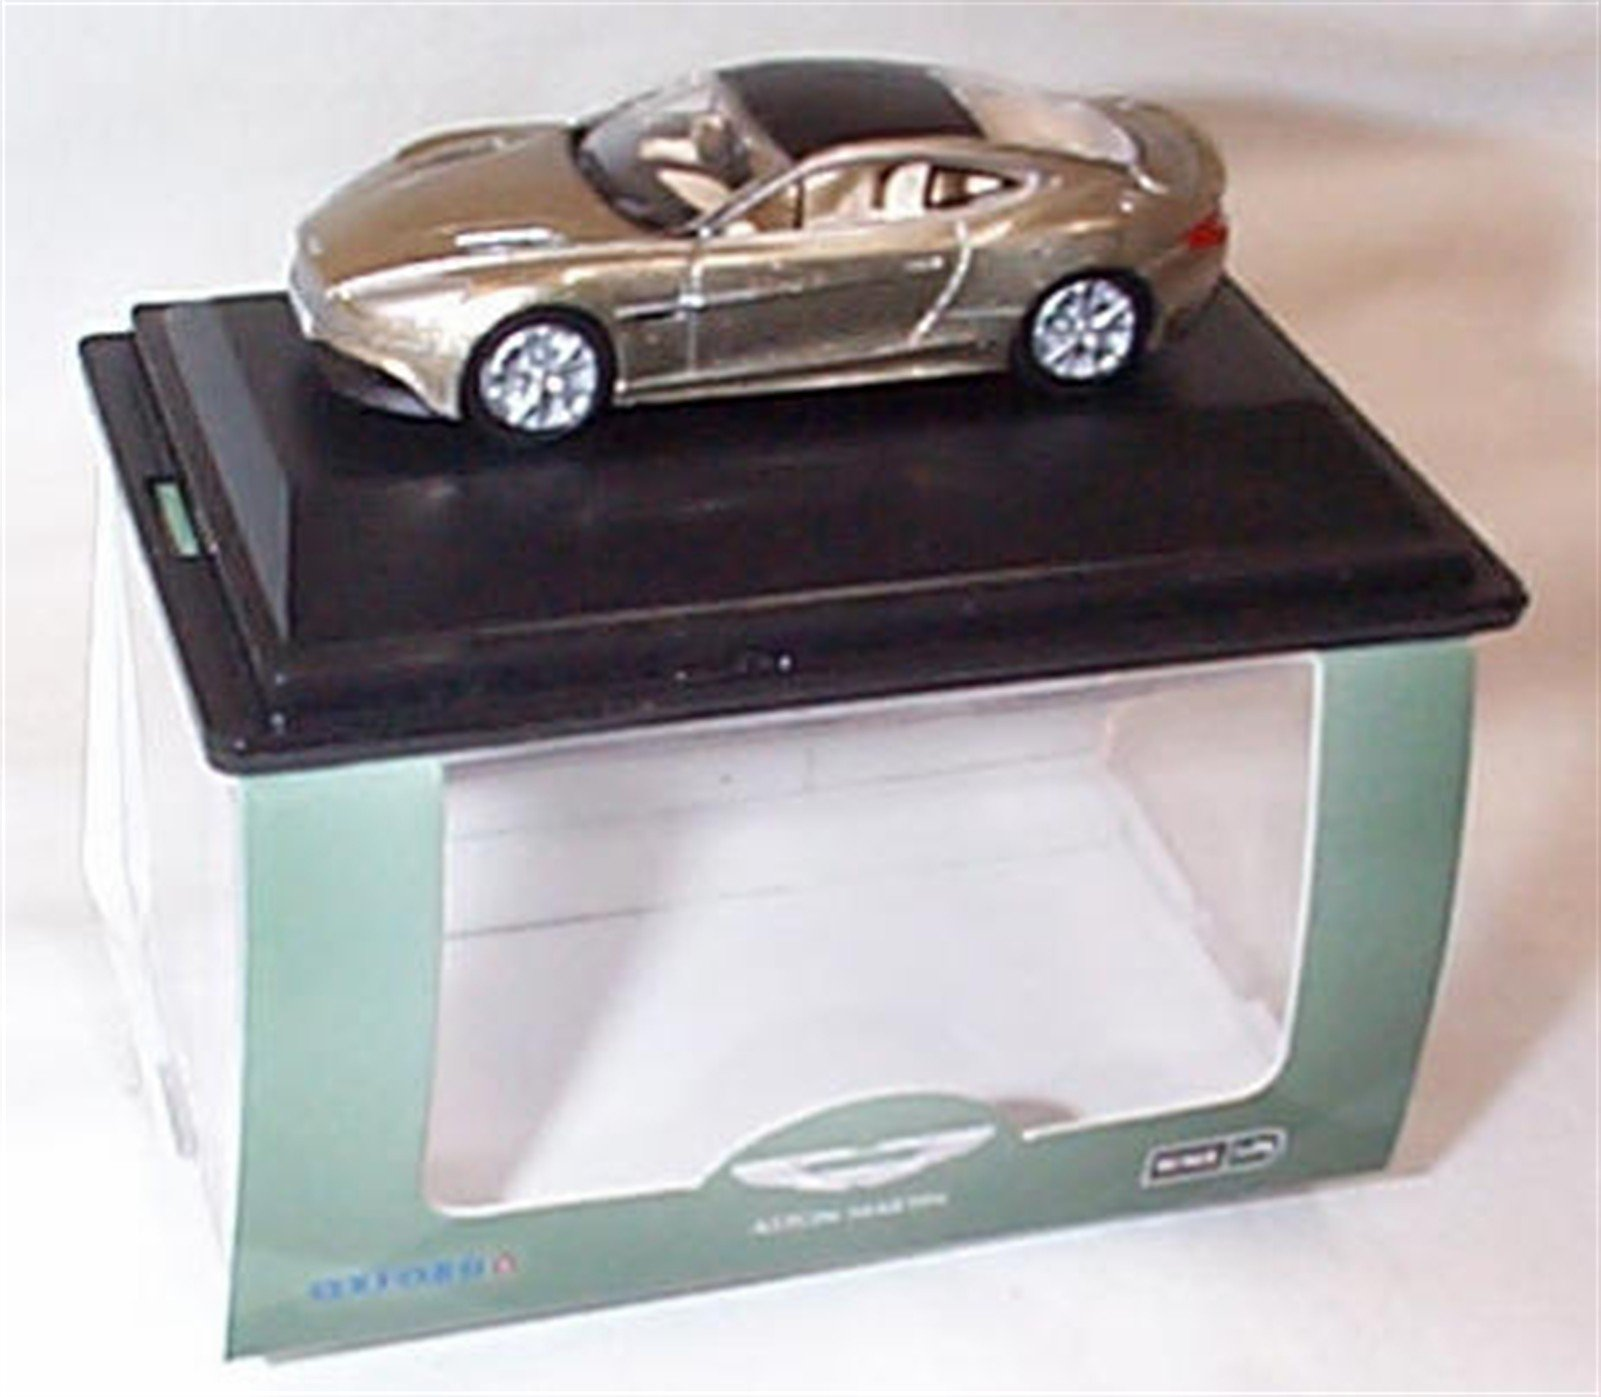 Oxford Aston Martin Vanquish Coupe Selene Bronze Car 1 76 Scale Diecast Model Buy Online In Guernsey At Guernsey Desertcart Com Productid 124767364